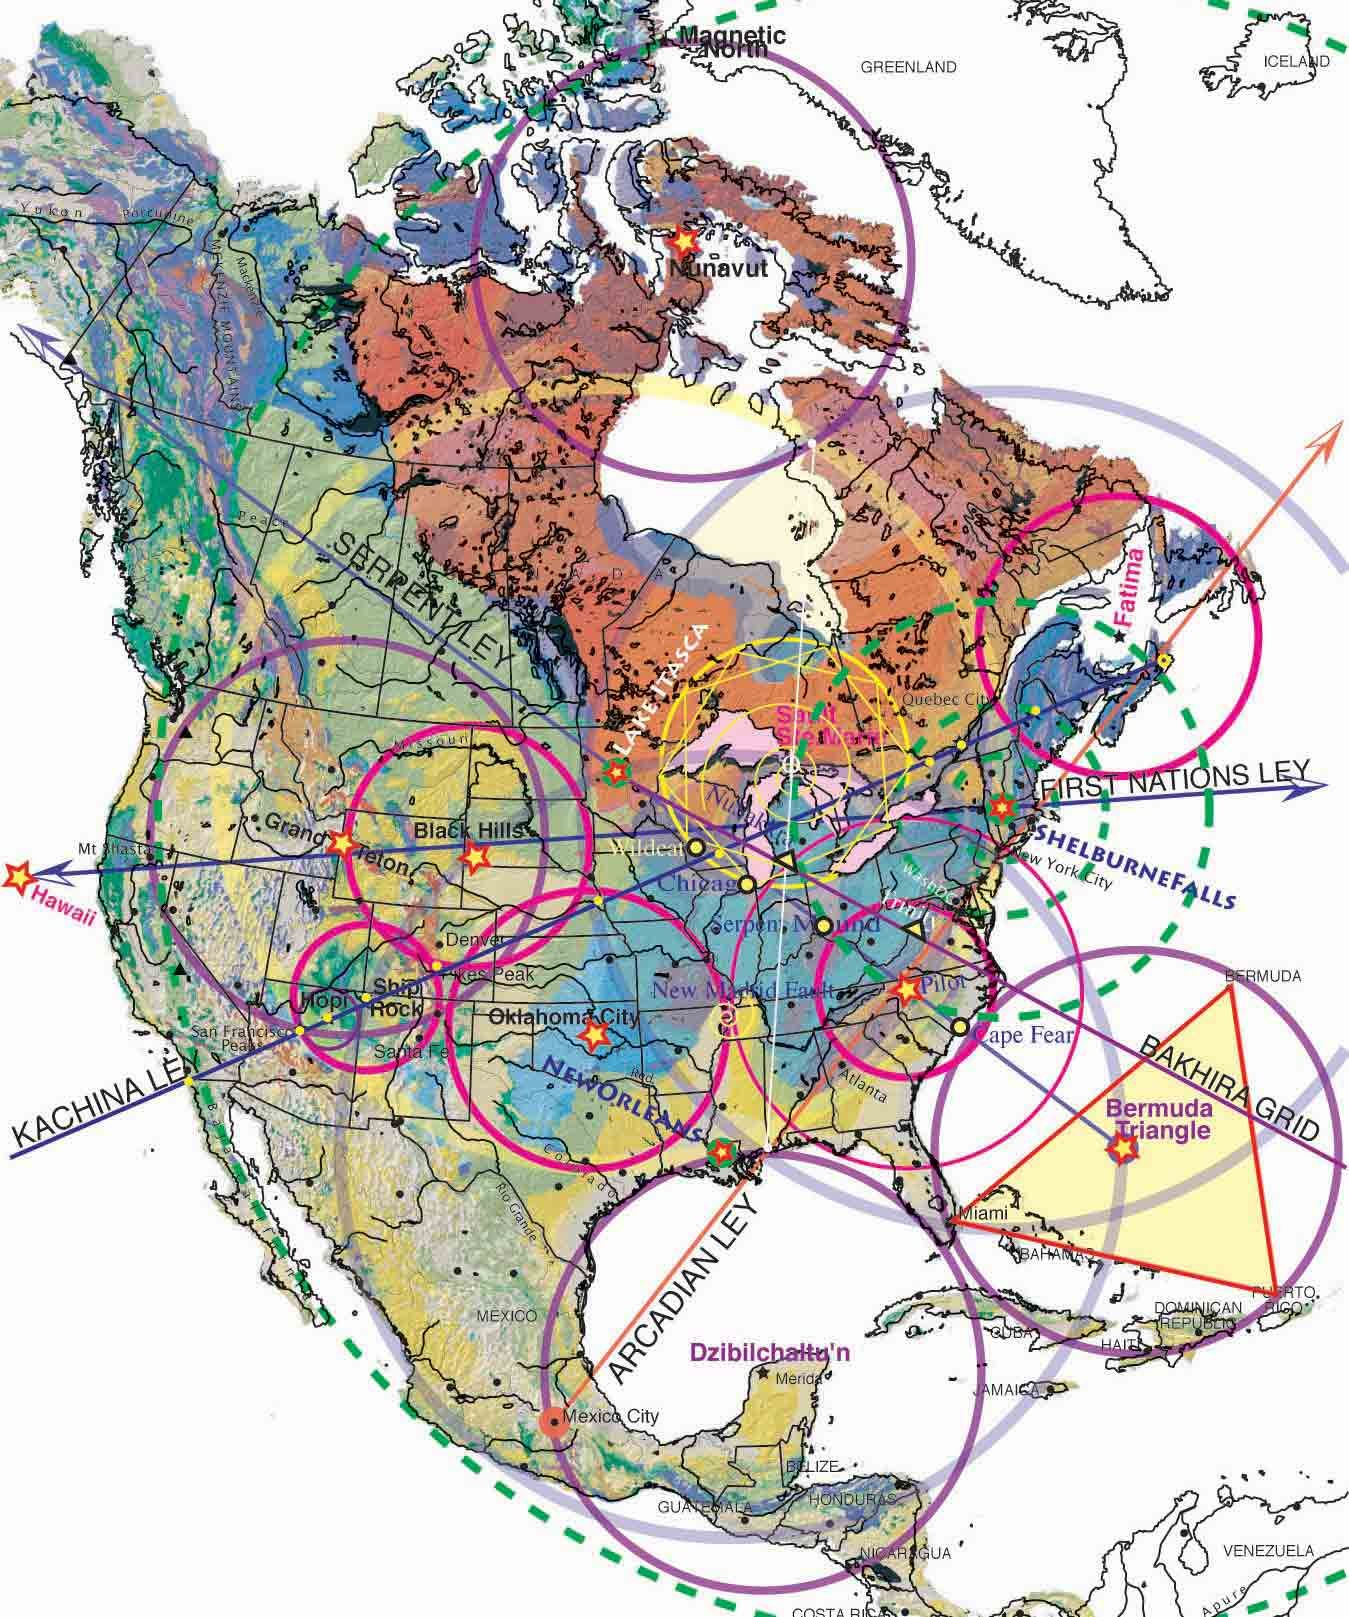 Magnetic Ley Lines in America Geology patterns North America